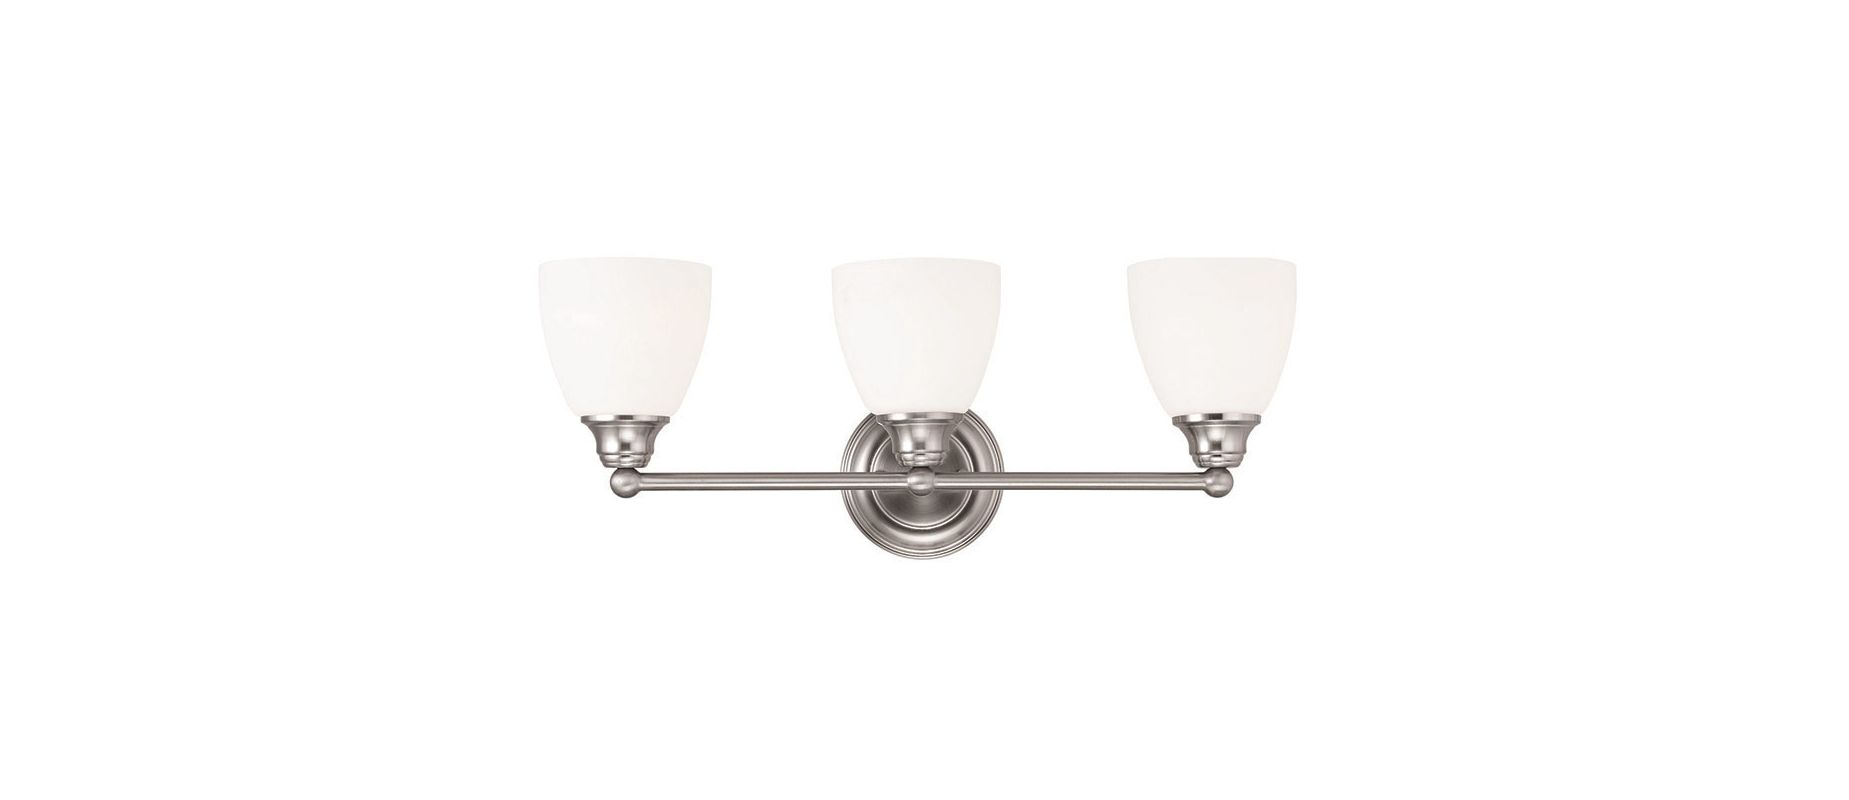 Livex Lighting 13663 Somerville 3 Light Bathroom Vanity Light Brushed